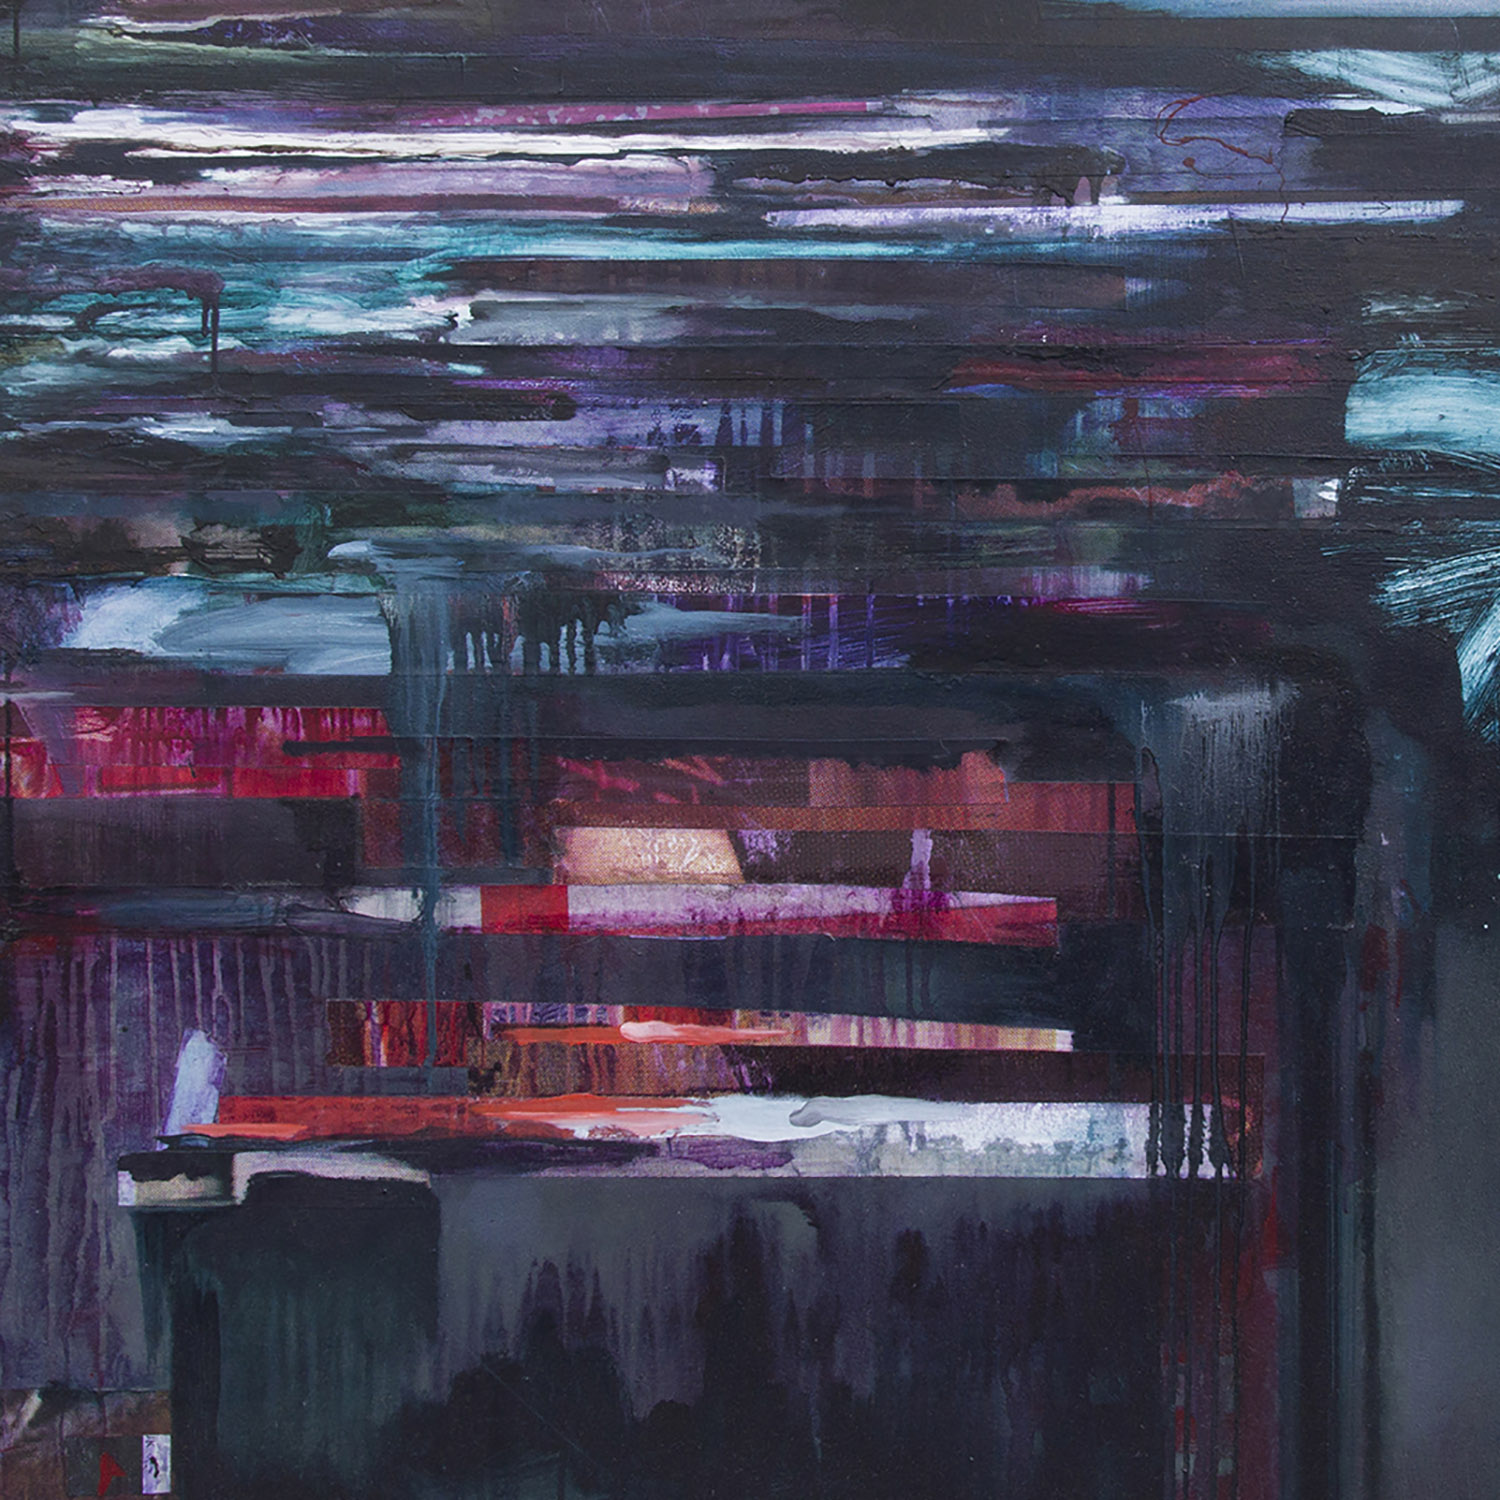 ABSENCE IN A CROWDED SPACE, 2015  The